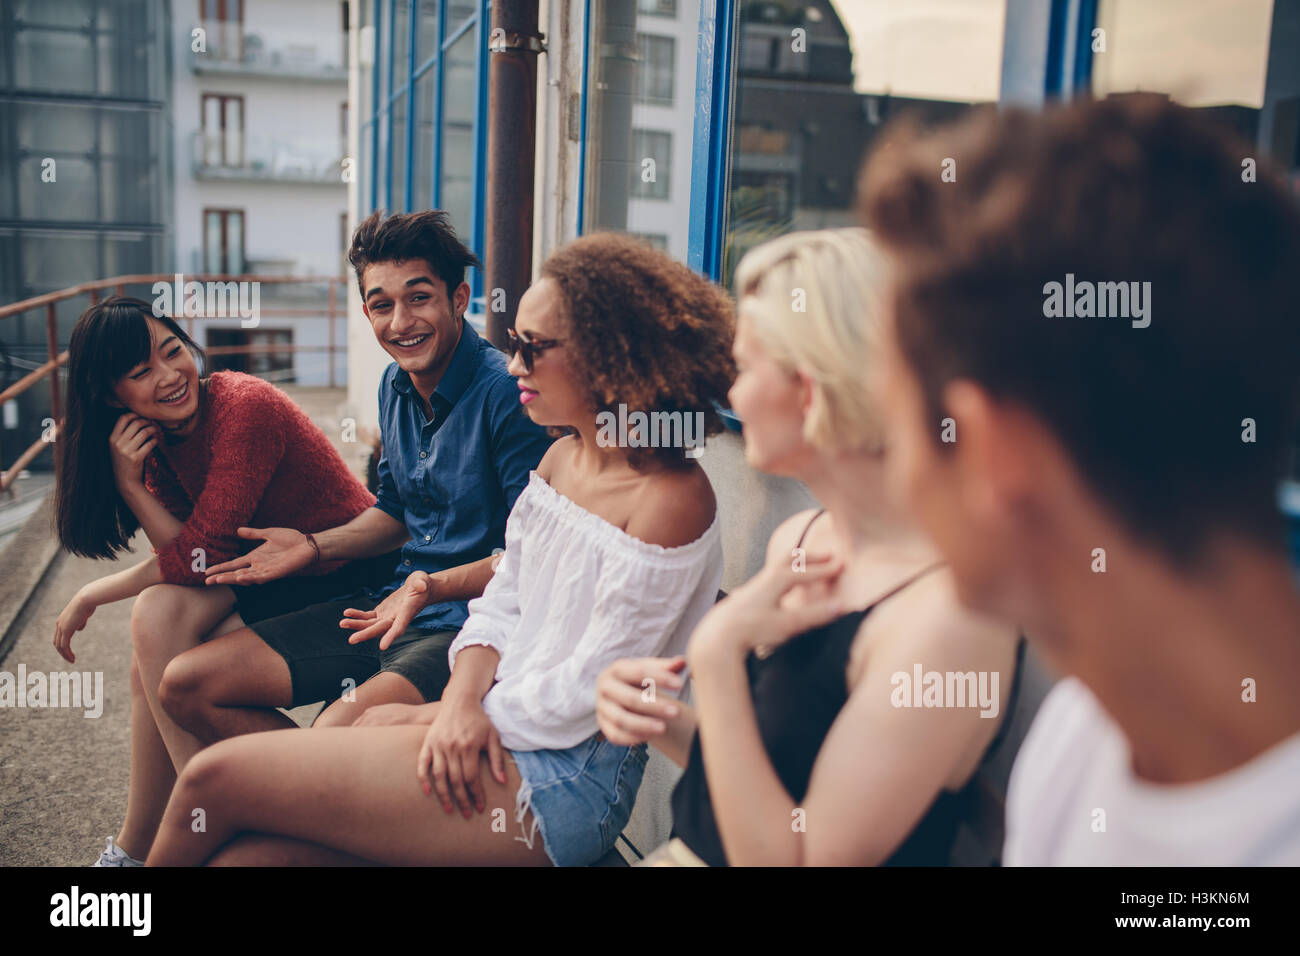 Multiracial group of friends sitting in balcony. Young people relaxing outdoors in terrace. - Stock Image